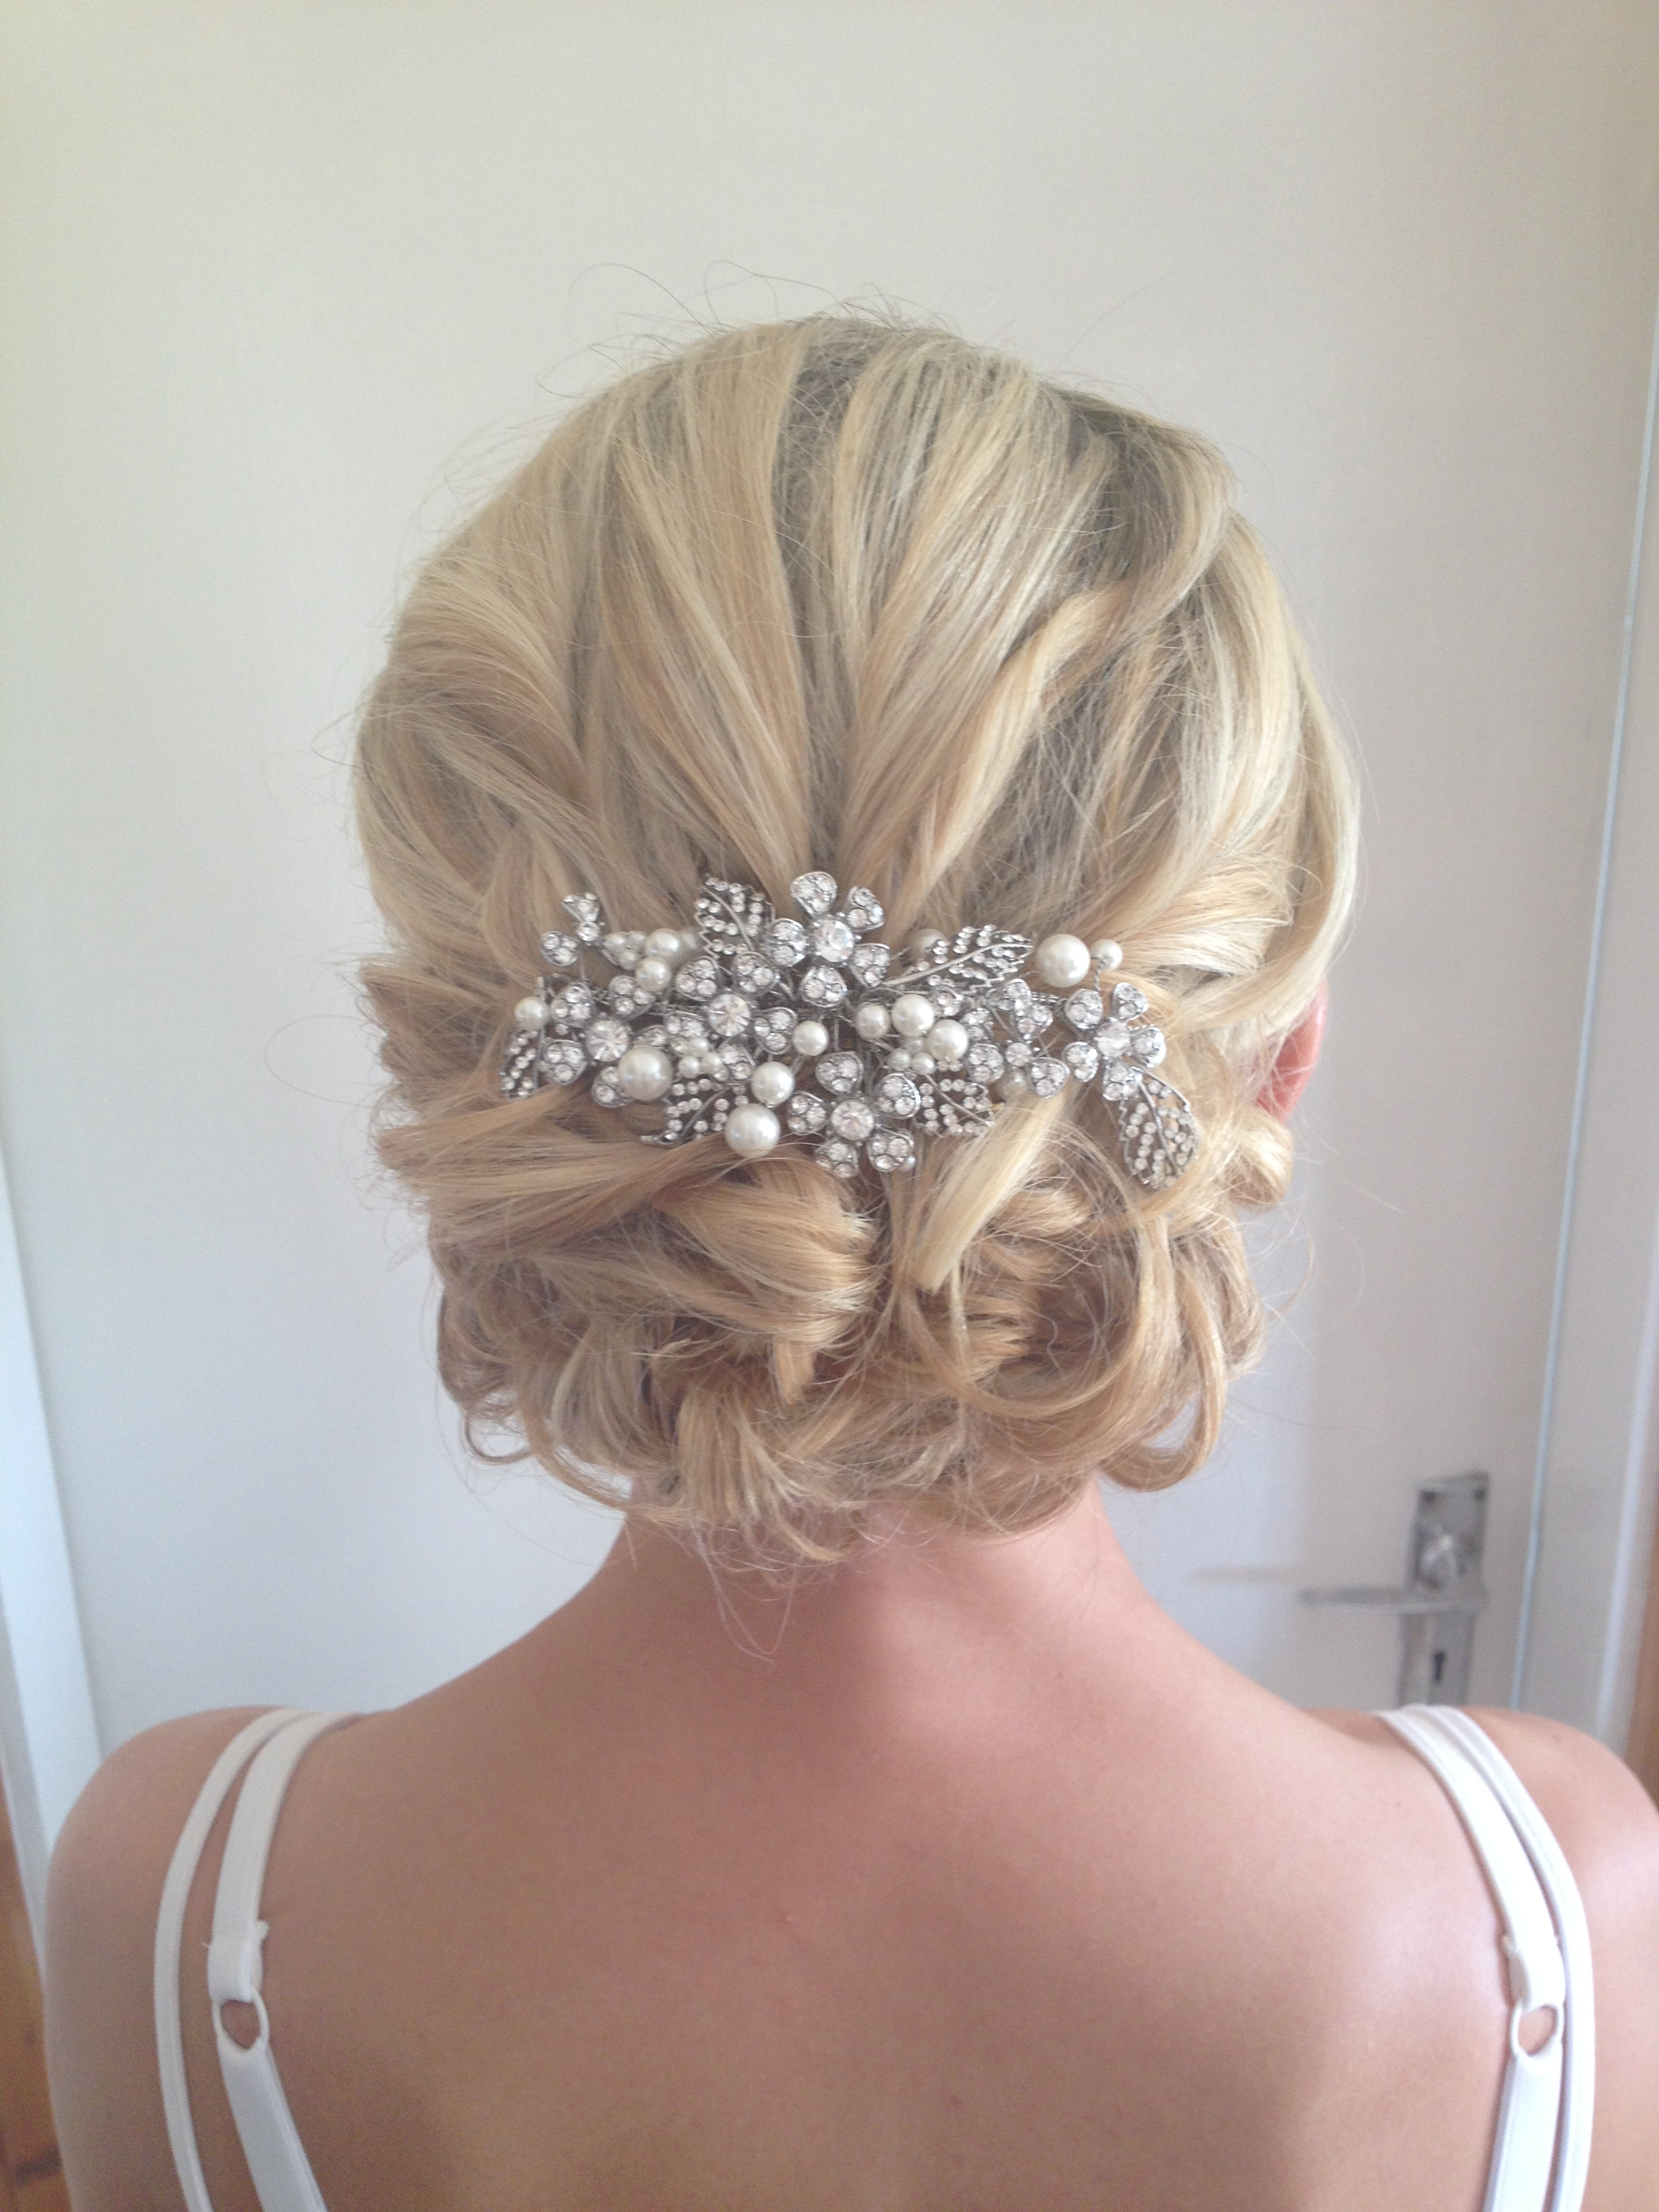 wedding hair trends 2013 and 2014 from salon 2 | salon 2